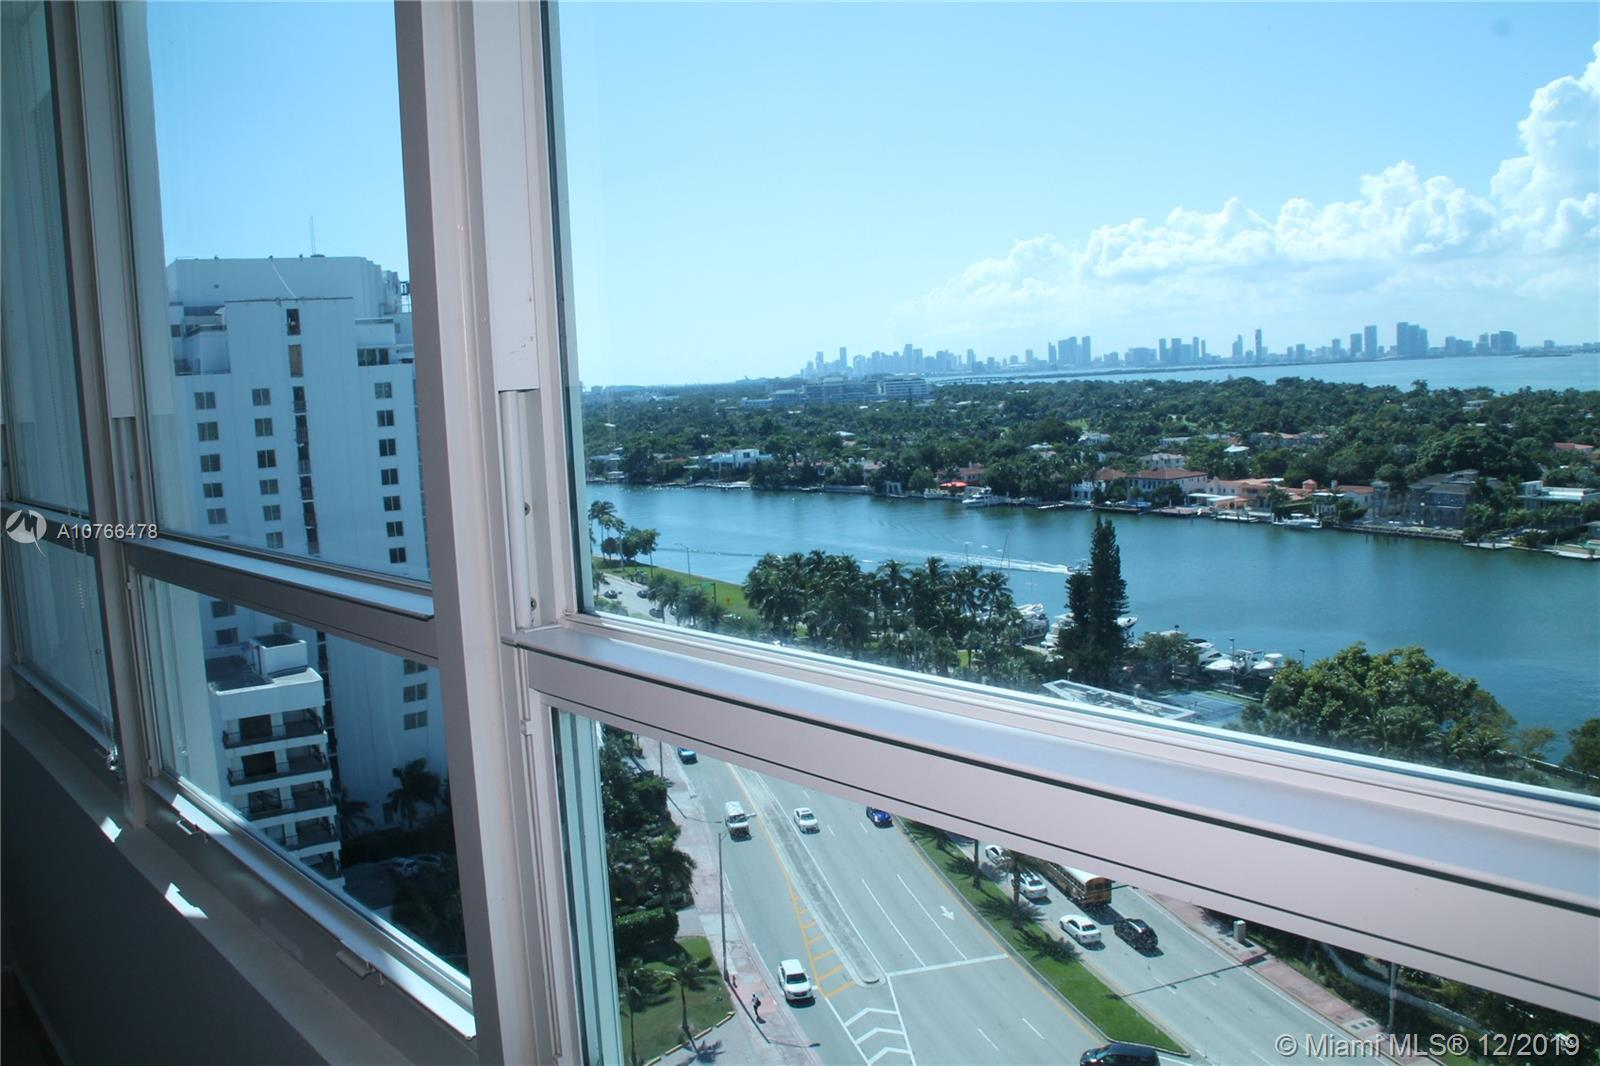 Thumbnail - 5445 Collins Ave # 1505, Miami Beach FL 33140